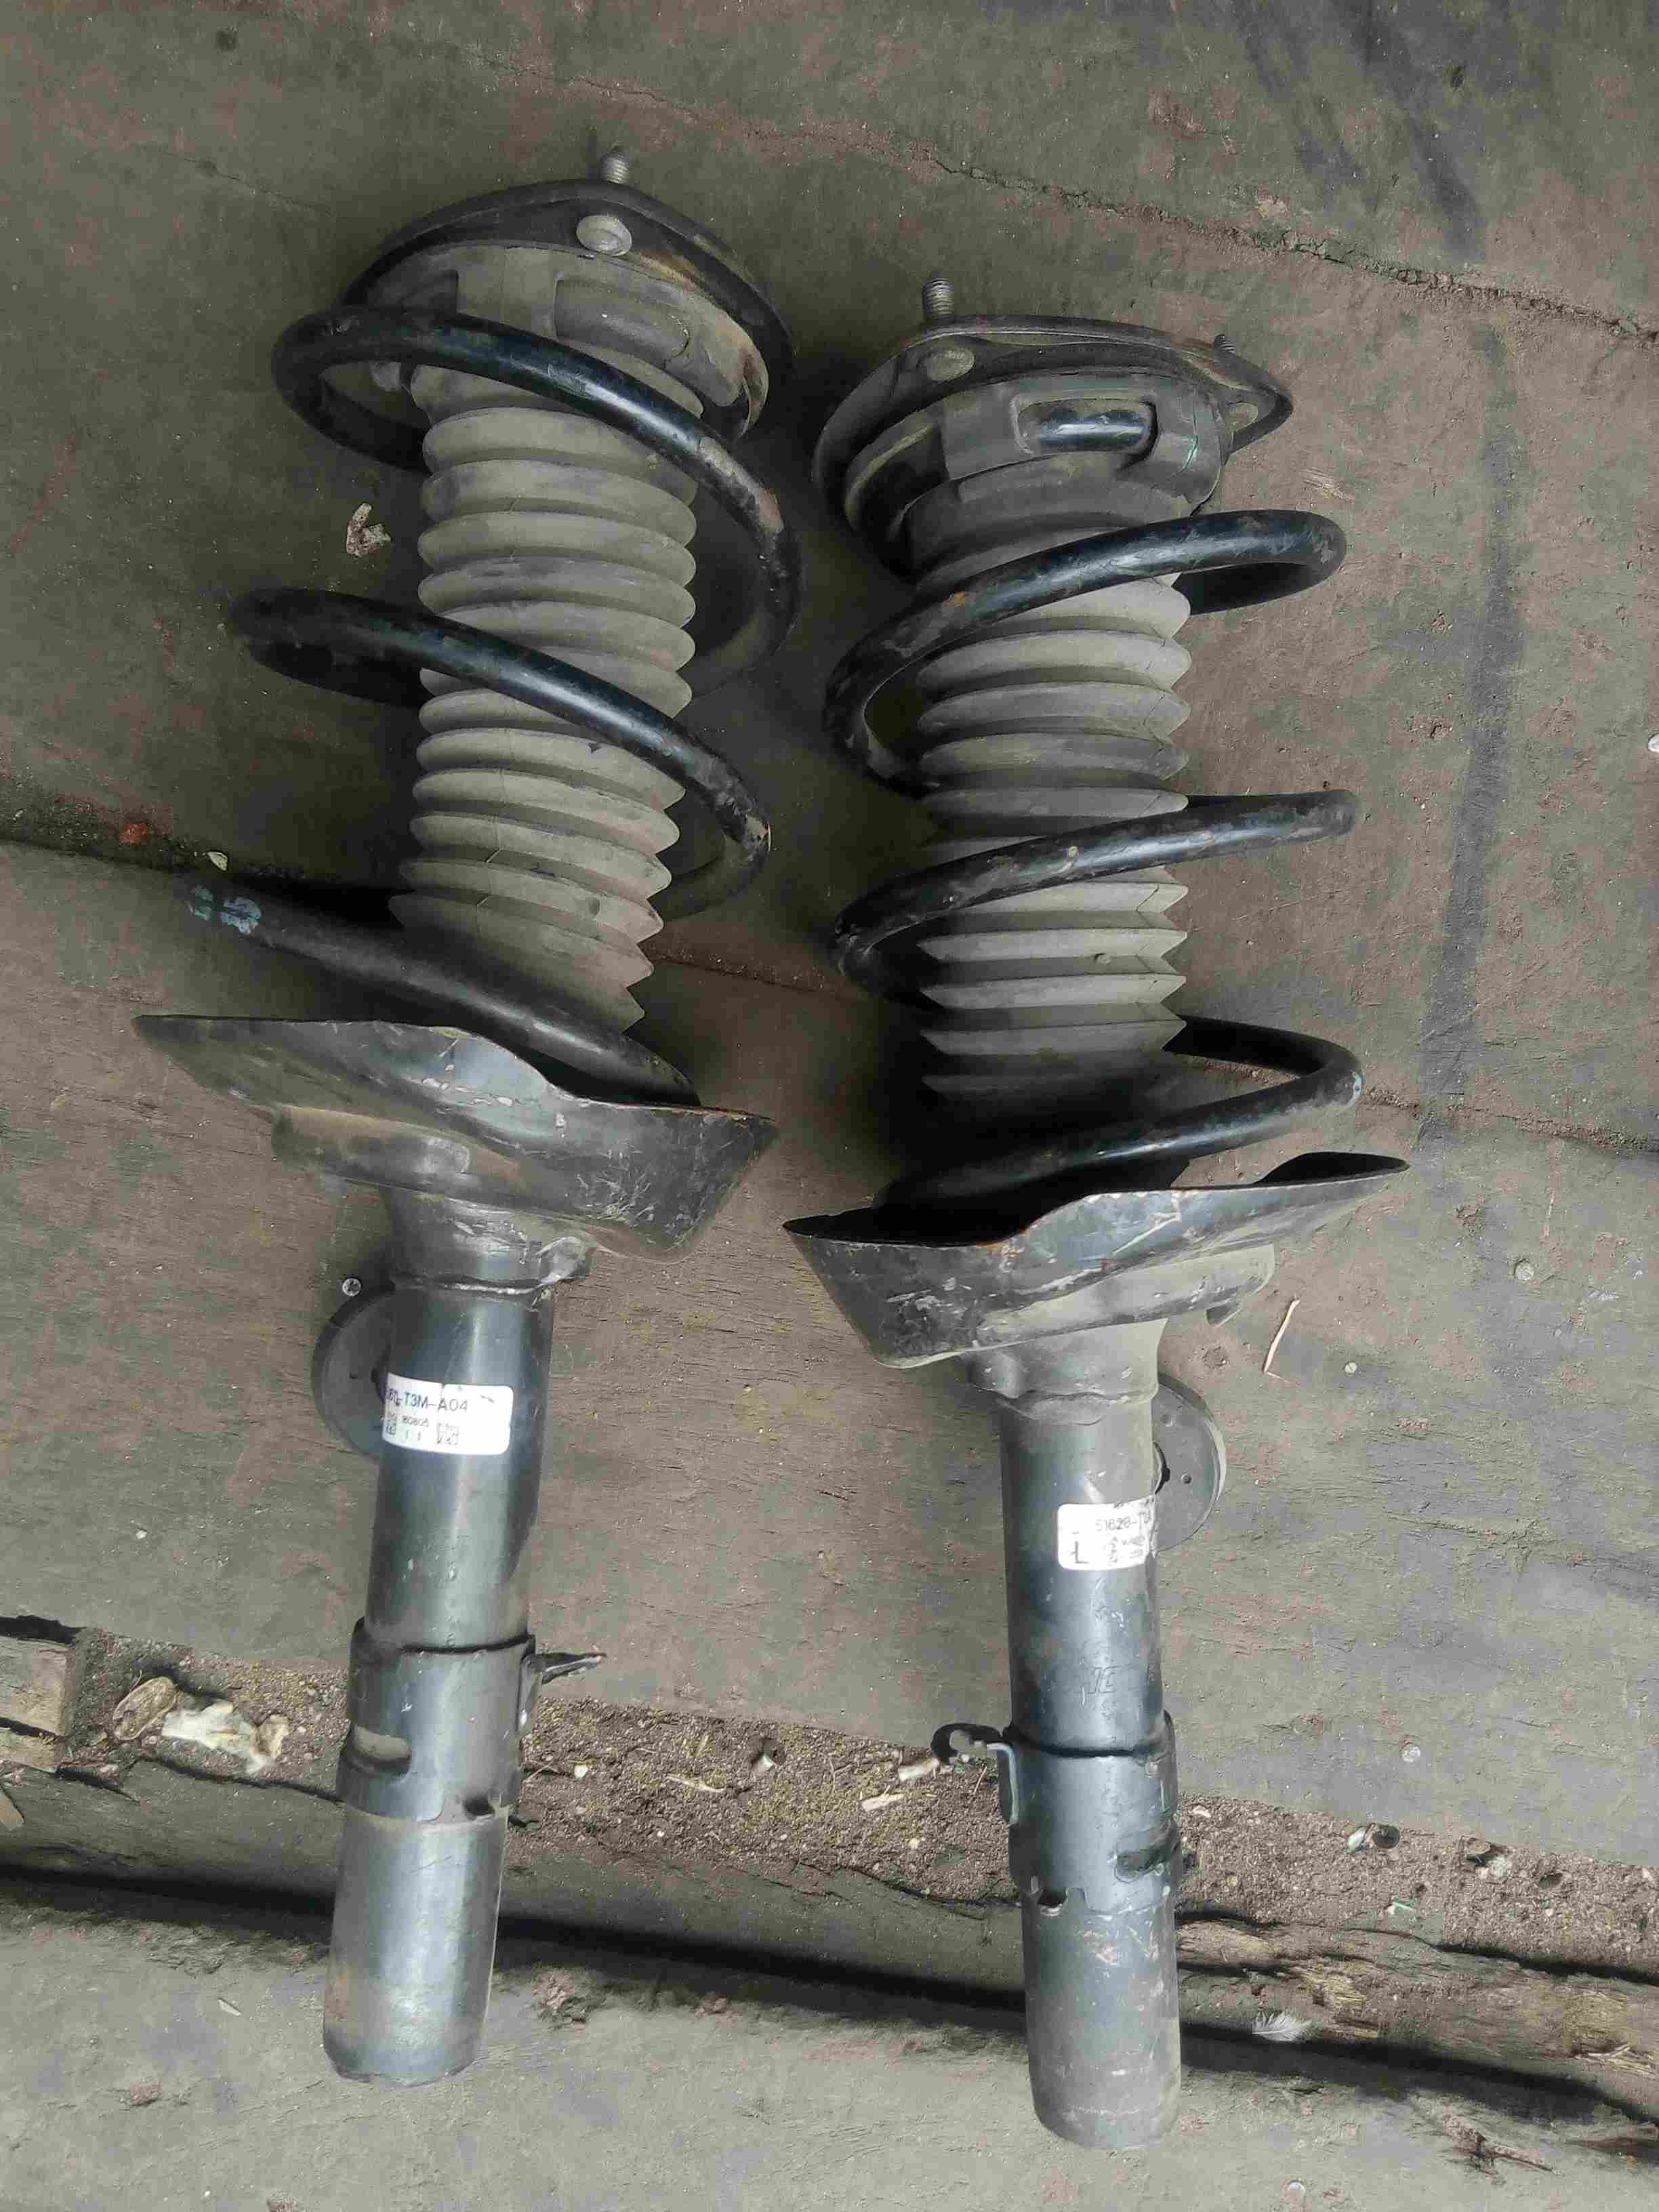 Belgium used Shock absorber front